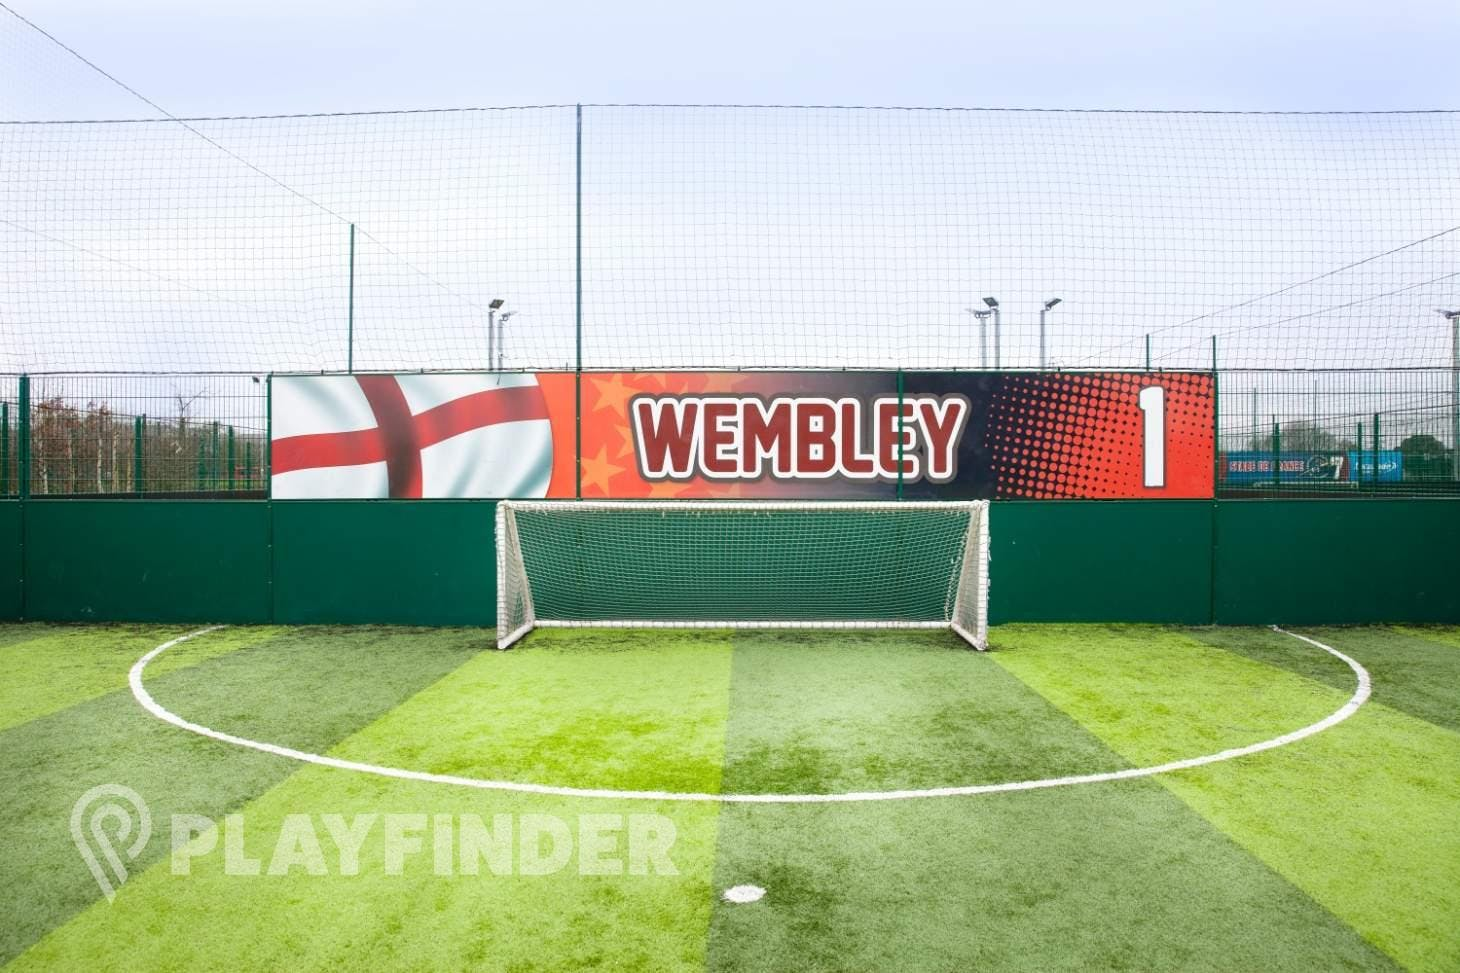 Goals Leicester 5 a side | 3G Astroturf football pitch